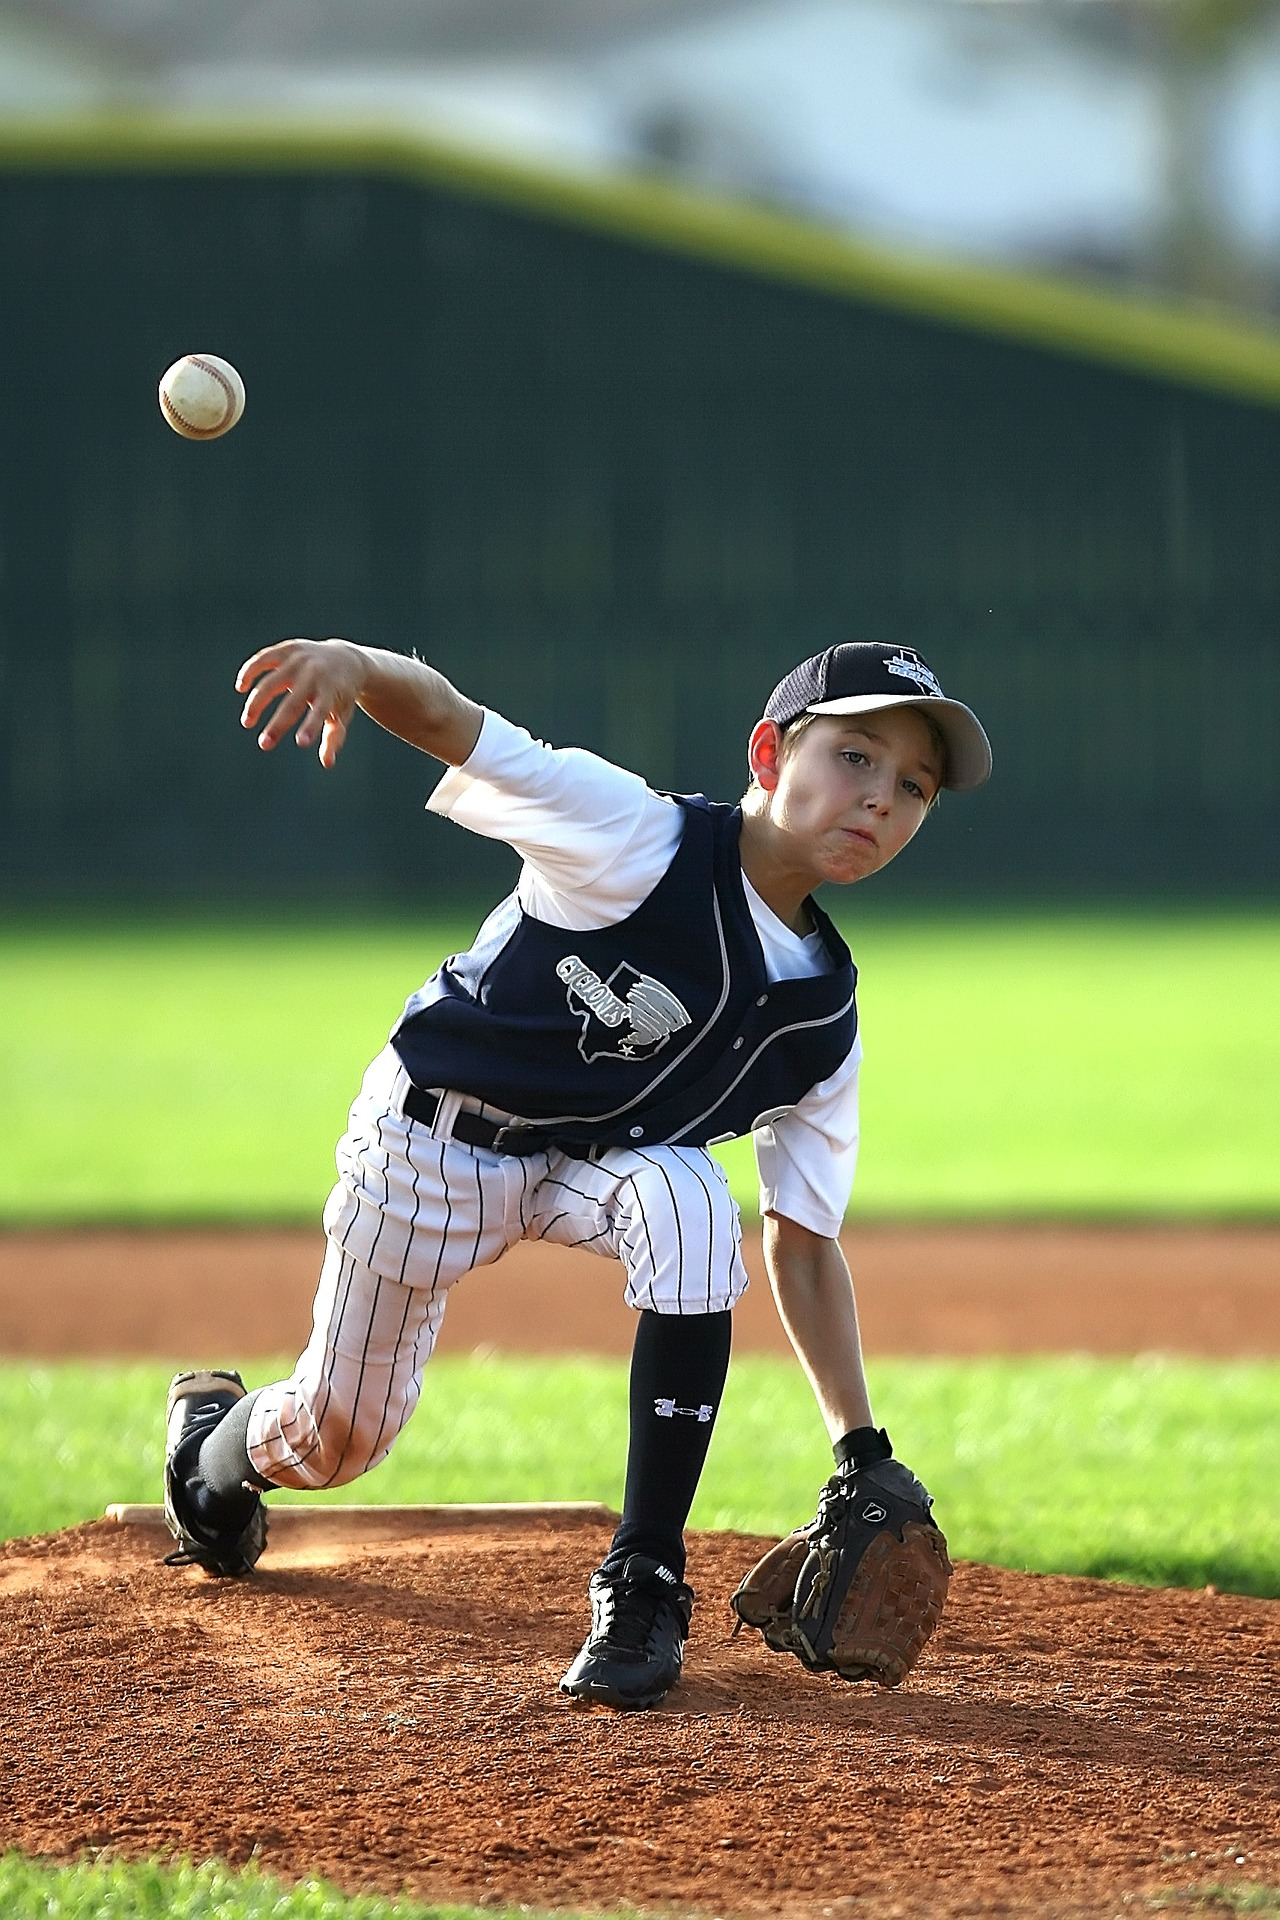 Strategies for Reducing Youth Pitching Fatigue